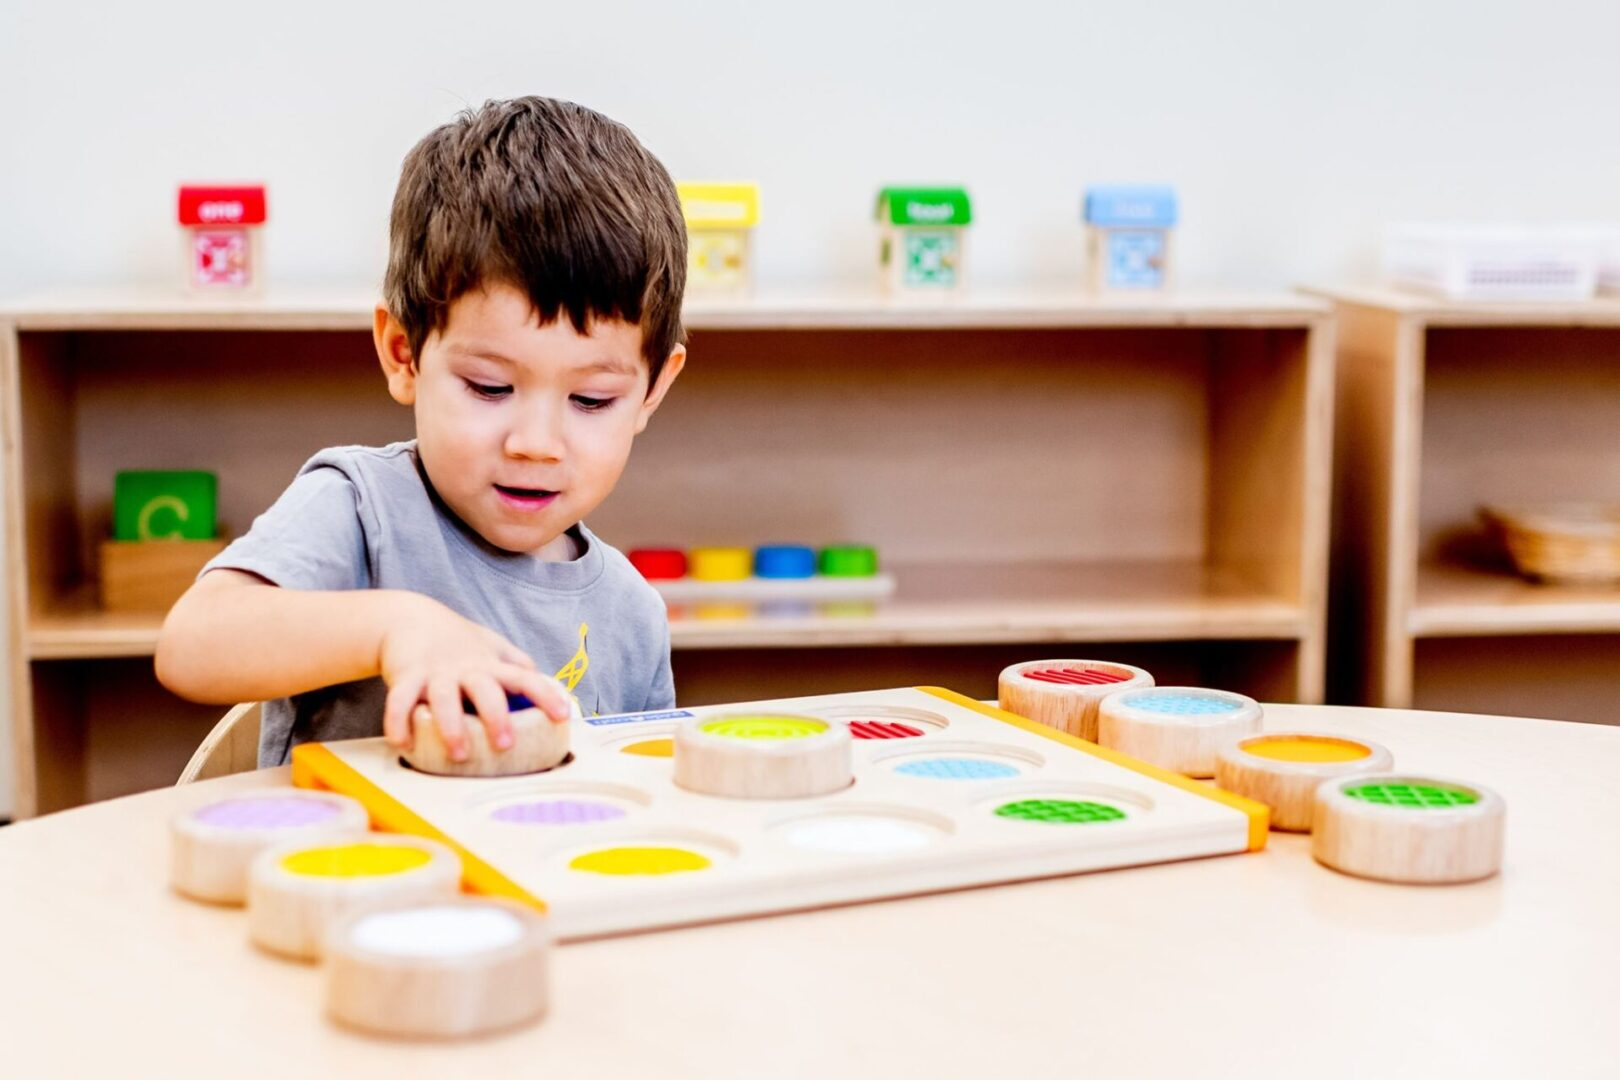 A little boy playing with wooden blocks